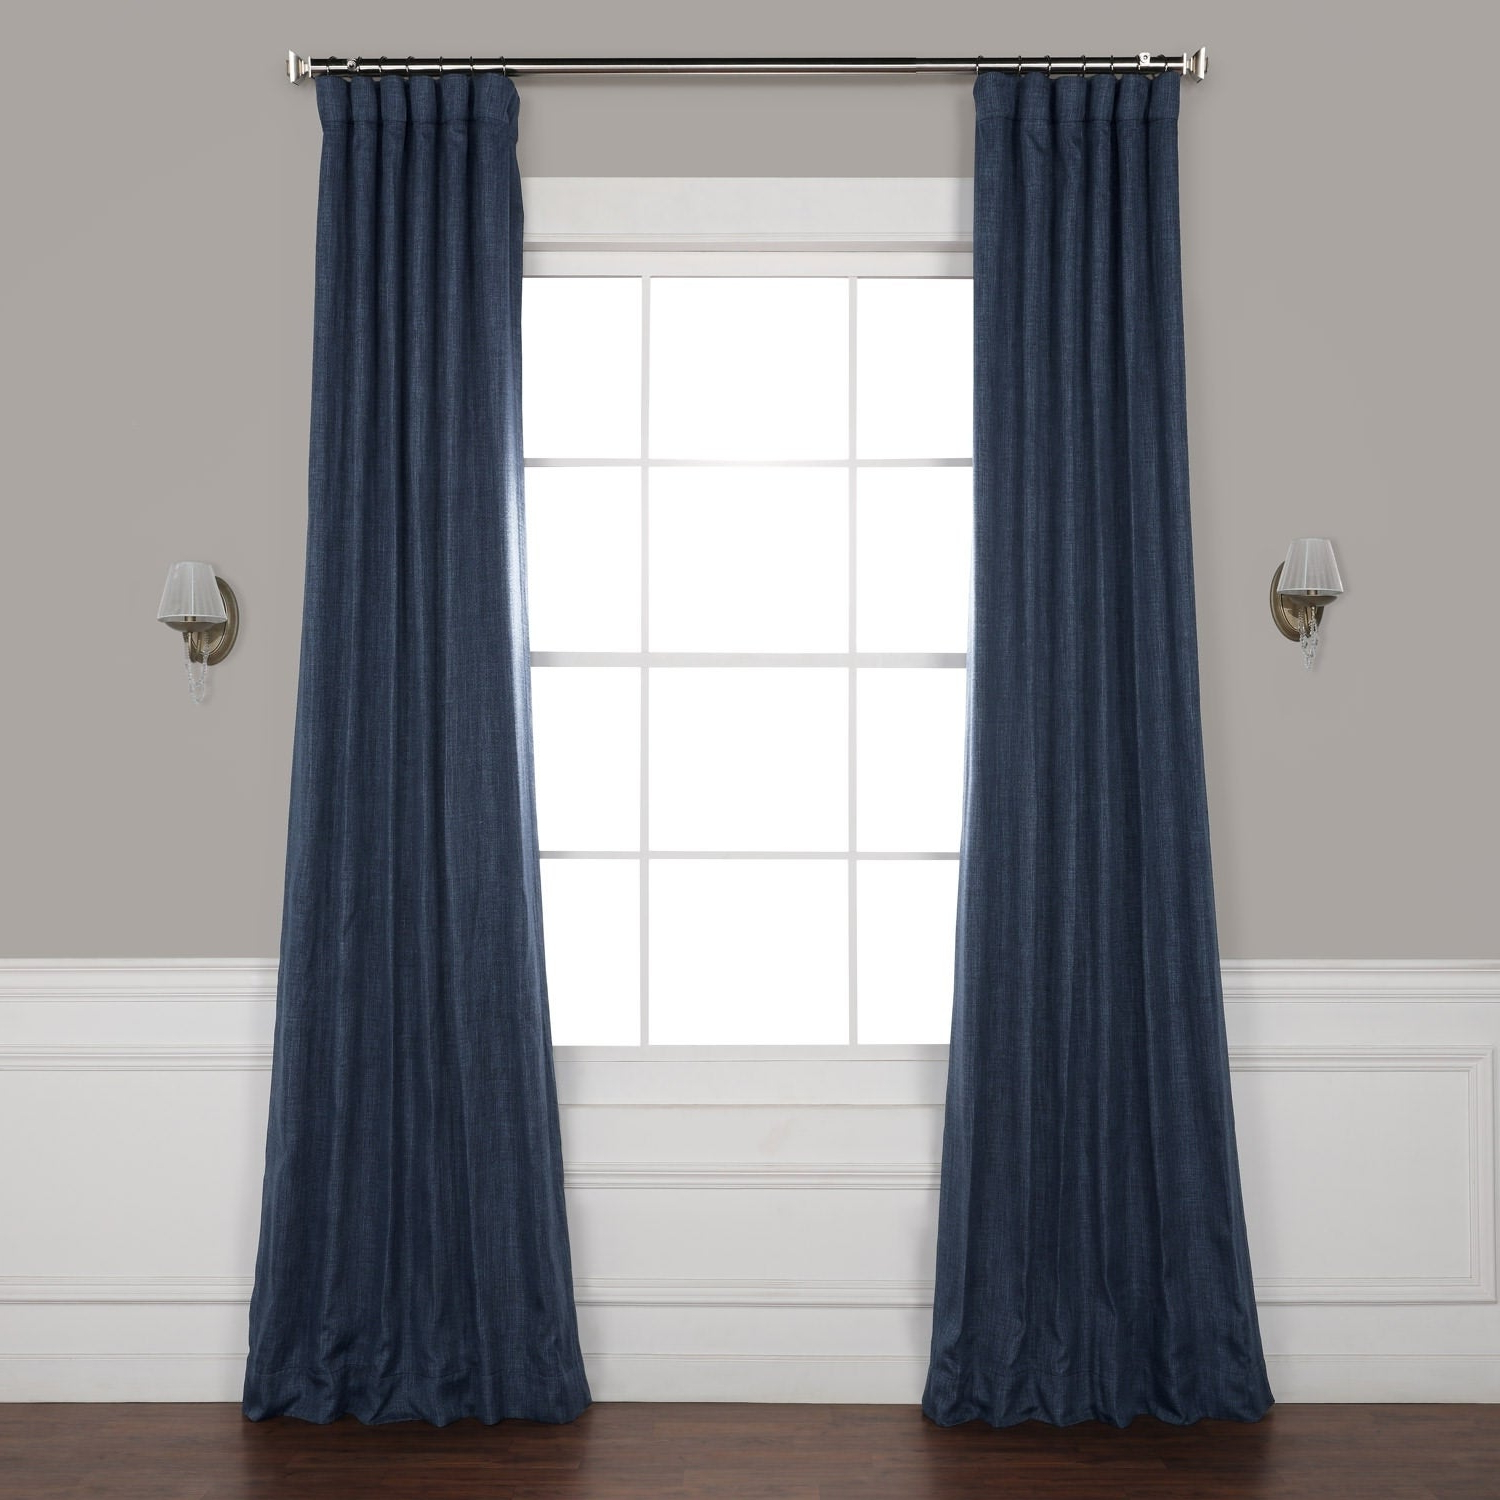 Trendy Exclusive Fabrics Faux Linen Blackout Curtain Intended For Faux Linen Extra Wide Blackout Curtains (View 13 of 21)